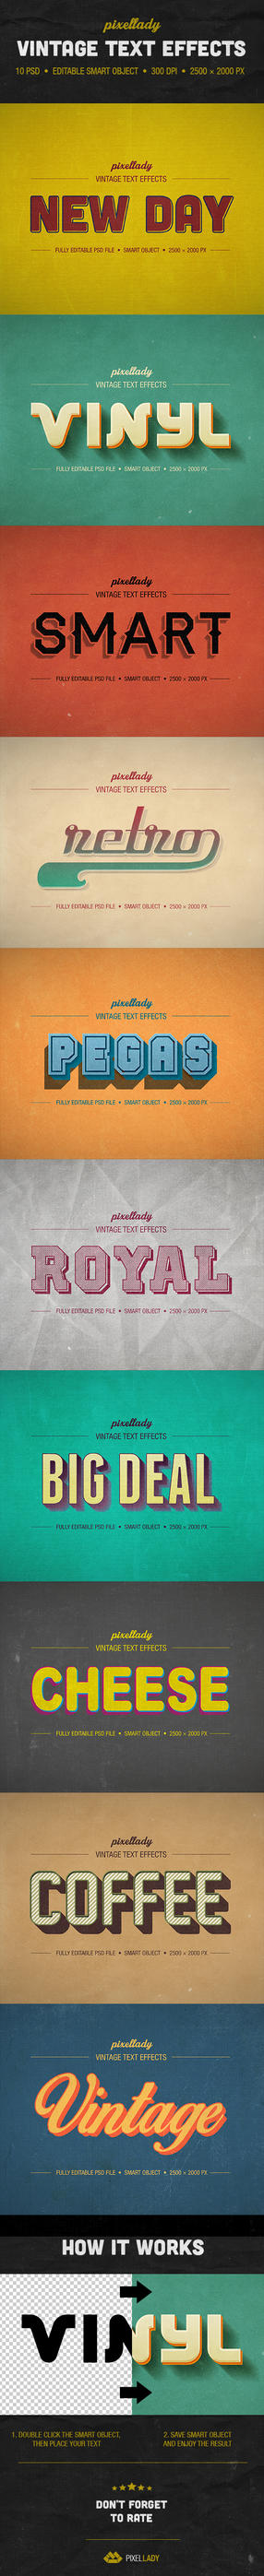 Vintage Text Effects by PixelladyArt